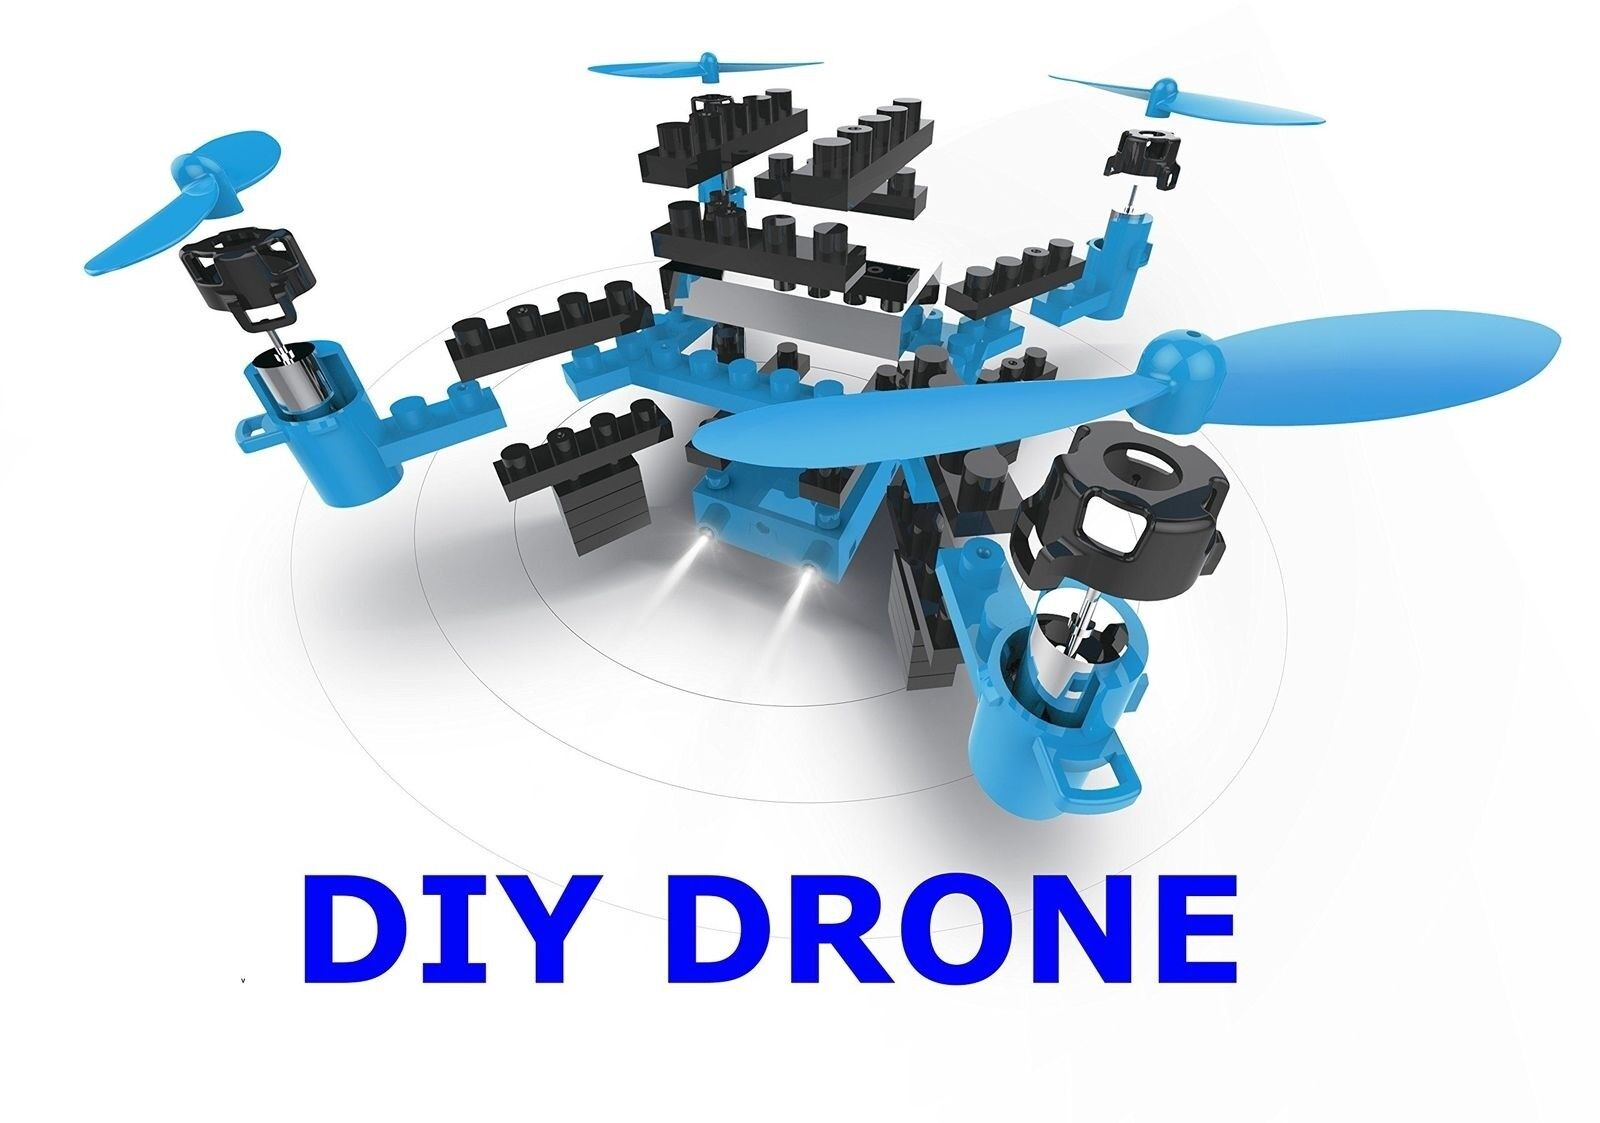 Blu Drone Quadcopter 2.4GHz Remote Control with Flexible Control Movement Movement Movement 940176